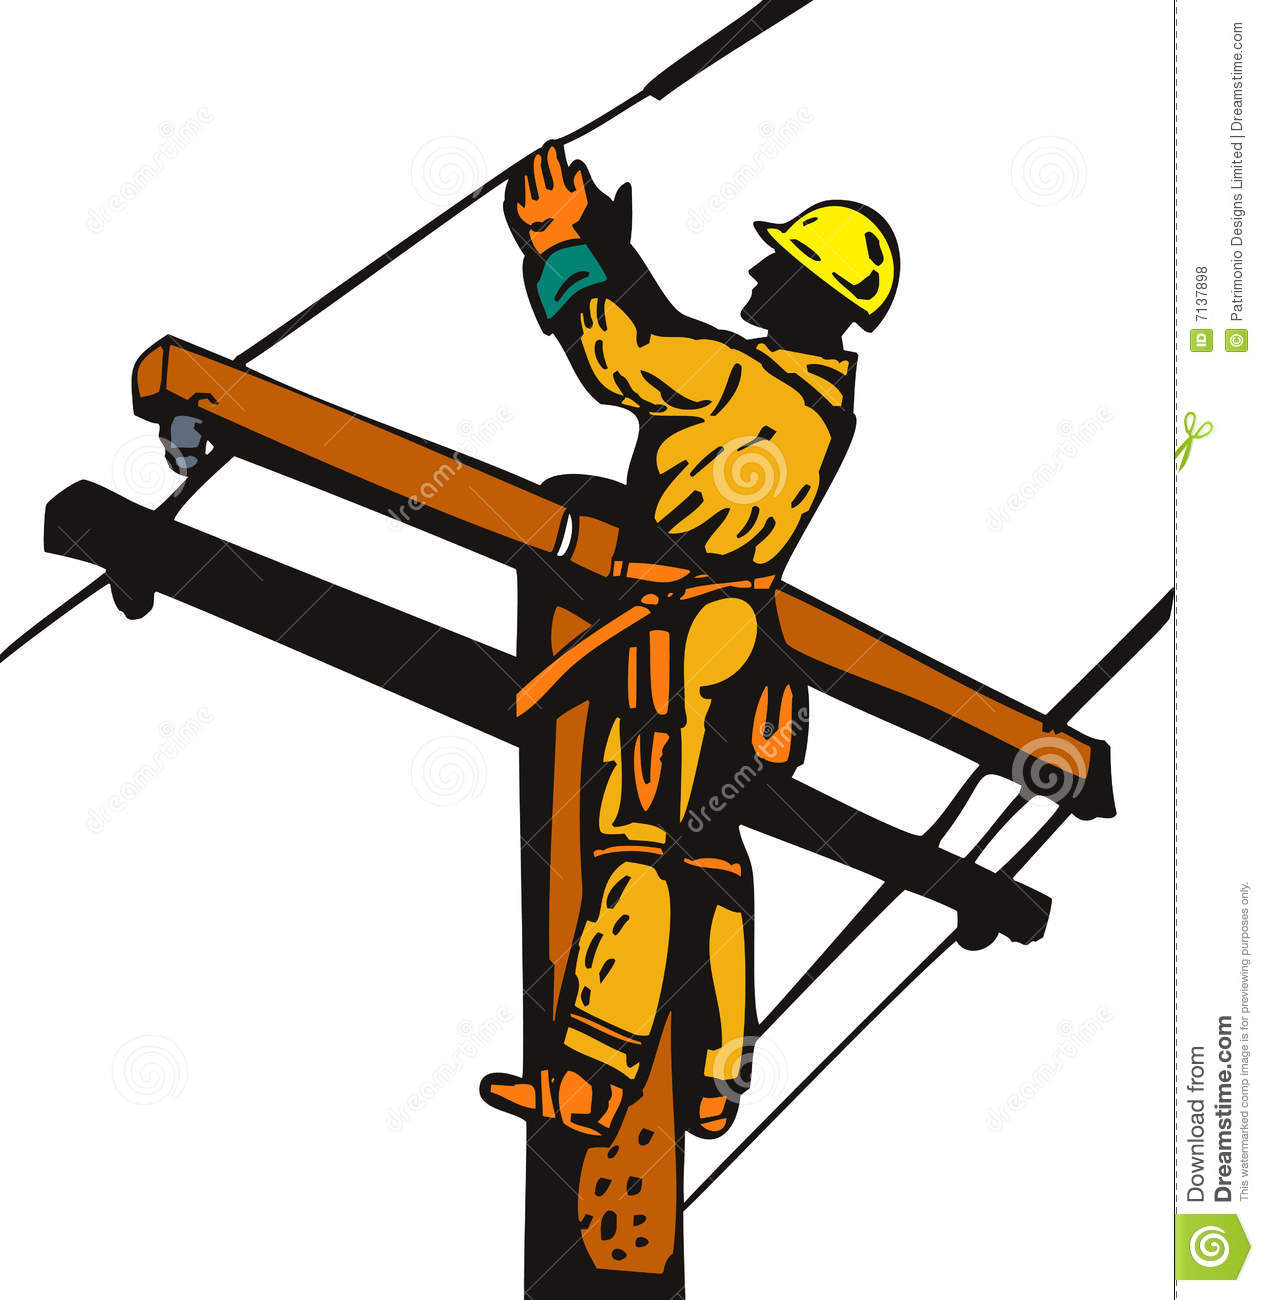 lineman stock illustrations 313 lineman stock illustrations rh dreamstime com offensive lineman clipart lineman clipart electrical